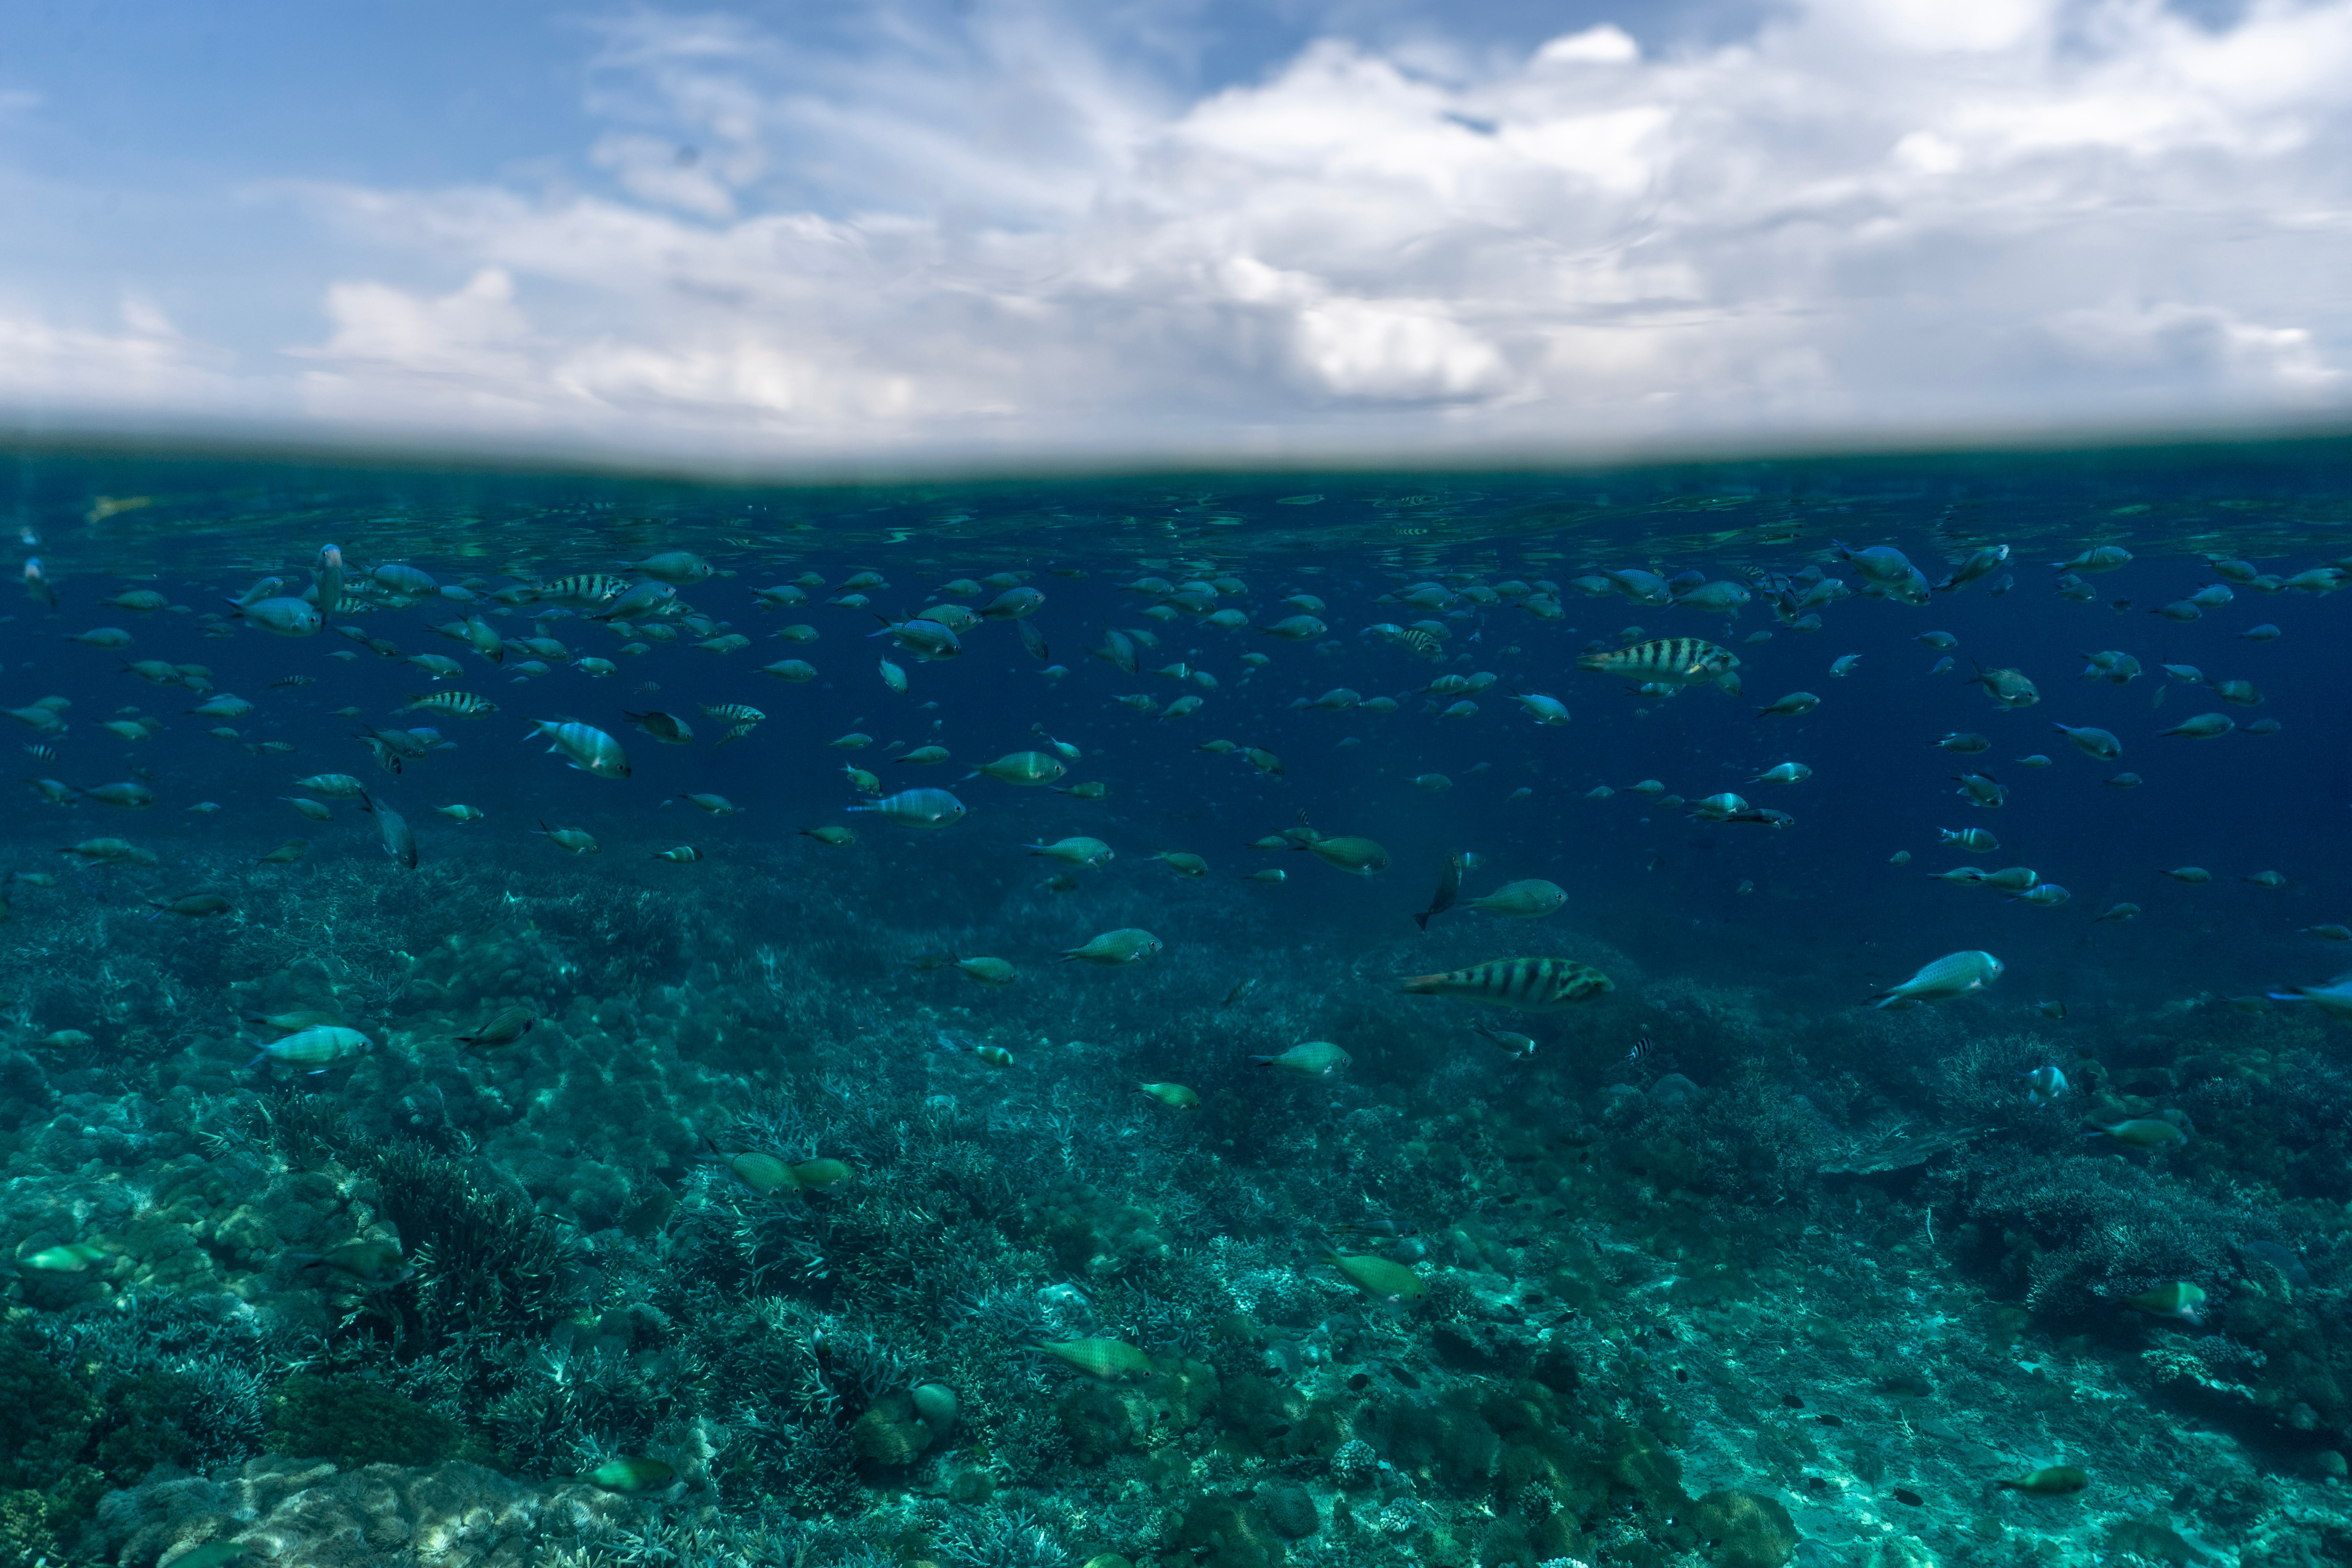 116051 download wallpaper Nature, Underwater World, Ocean, Fishes screensavers and pictures for free